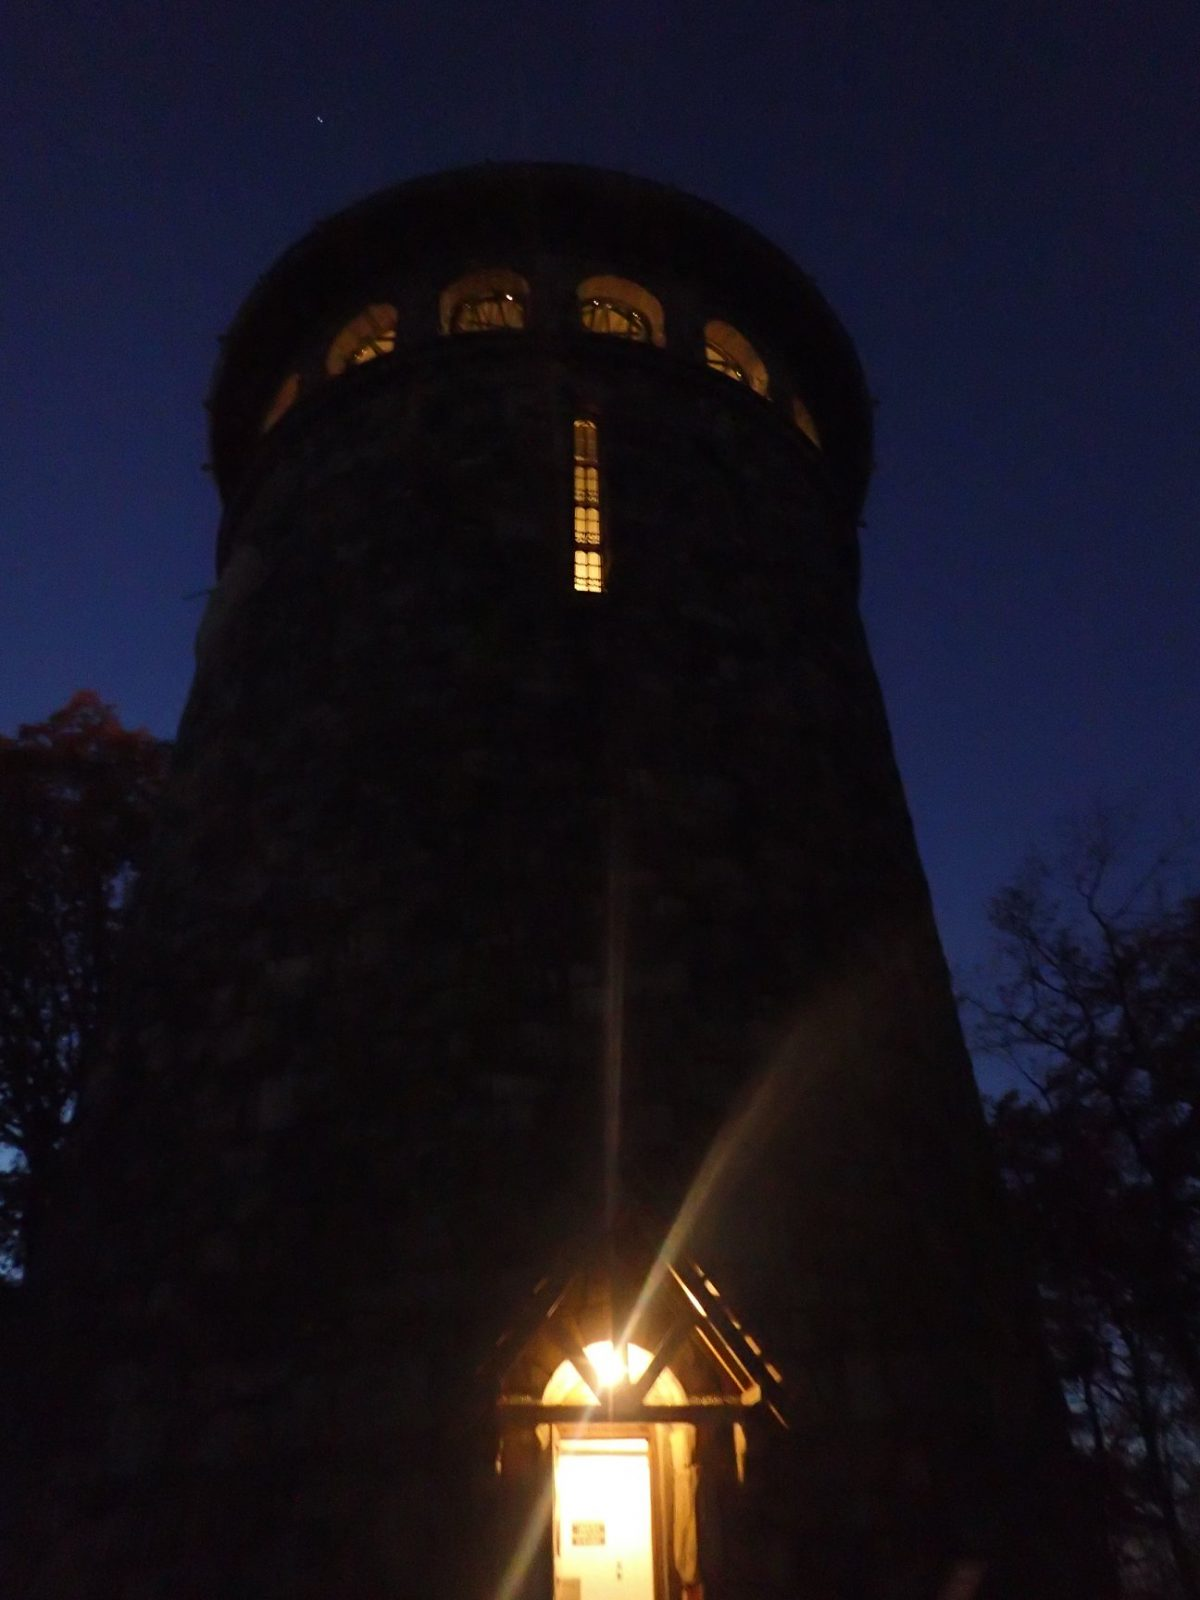 A night at the tower